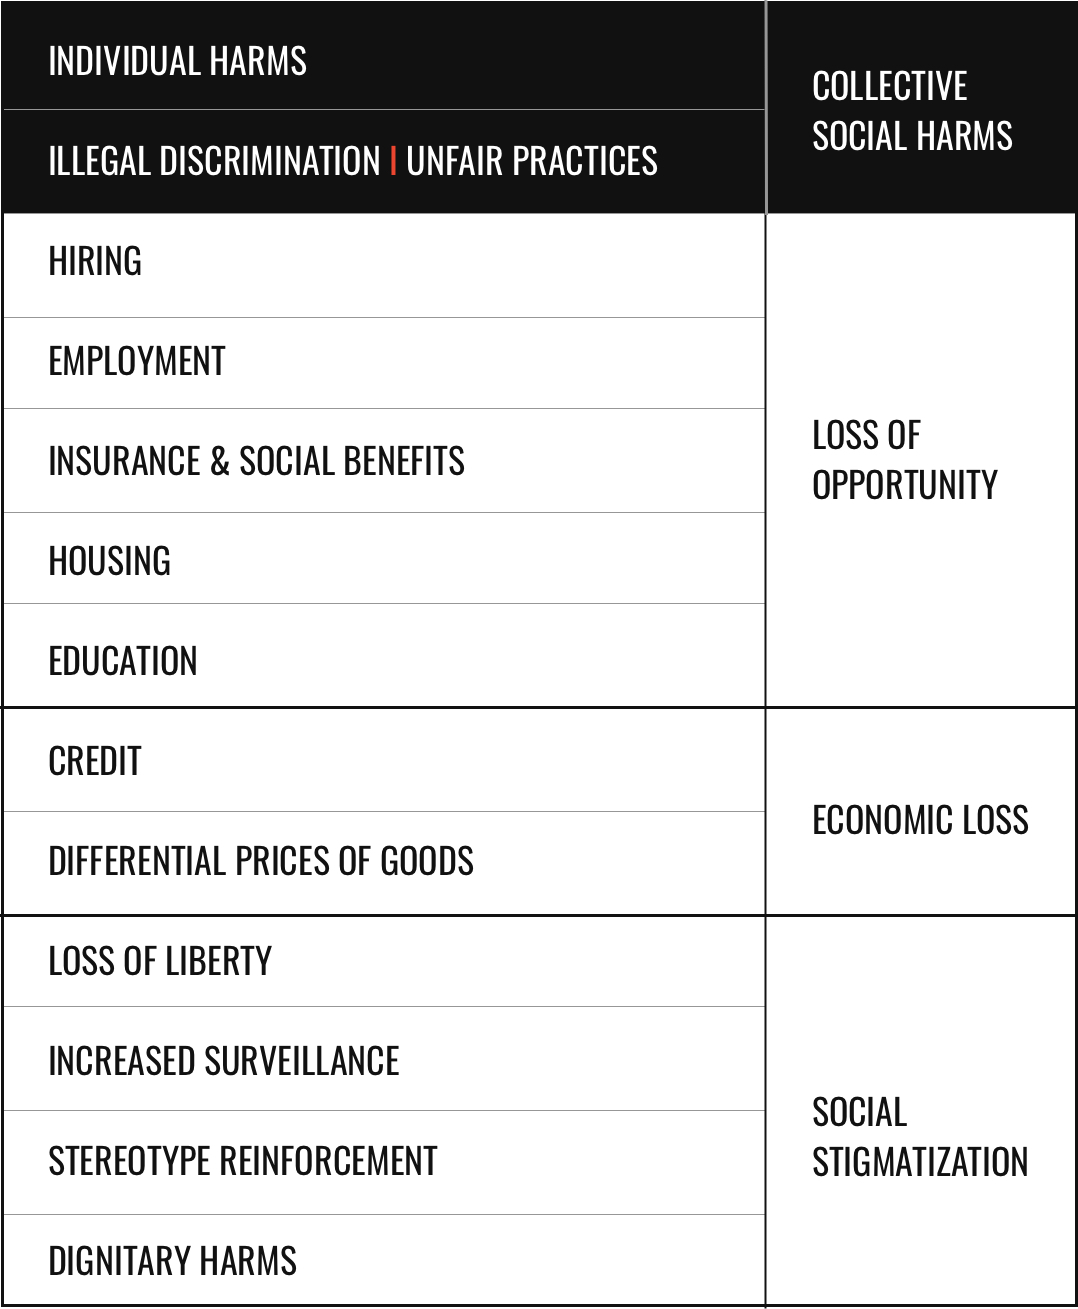 Individual Harms, Illegal Discrimination, Unfair Practices, Collective Social Harms